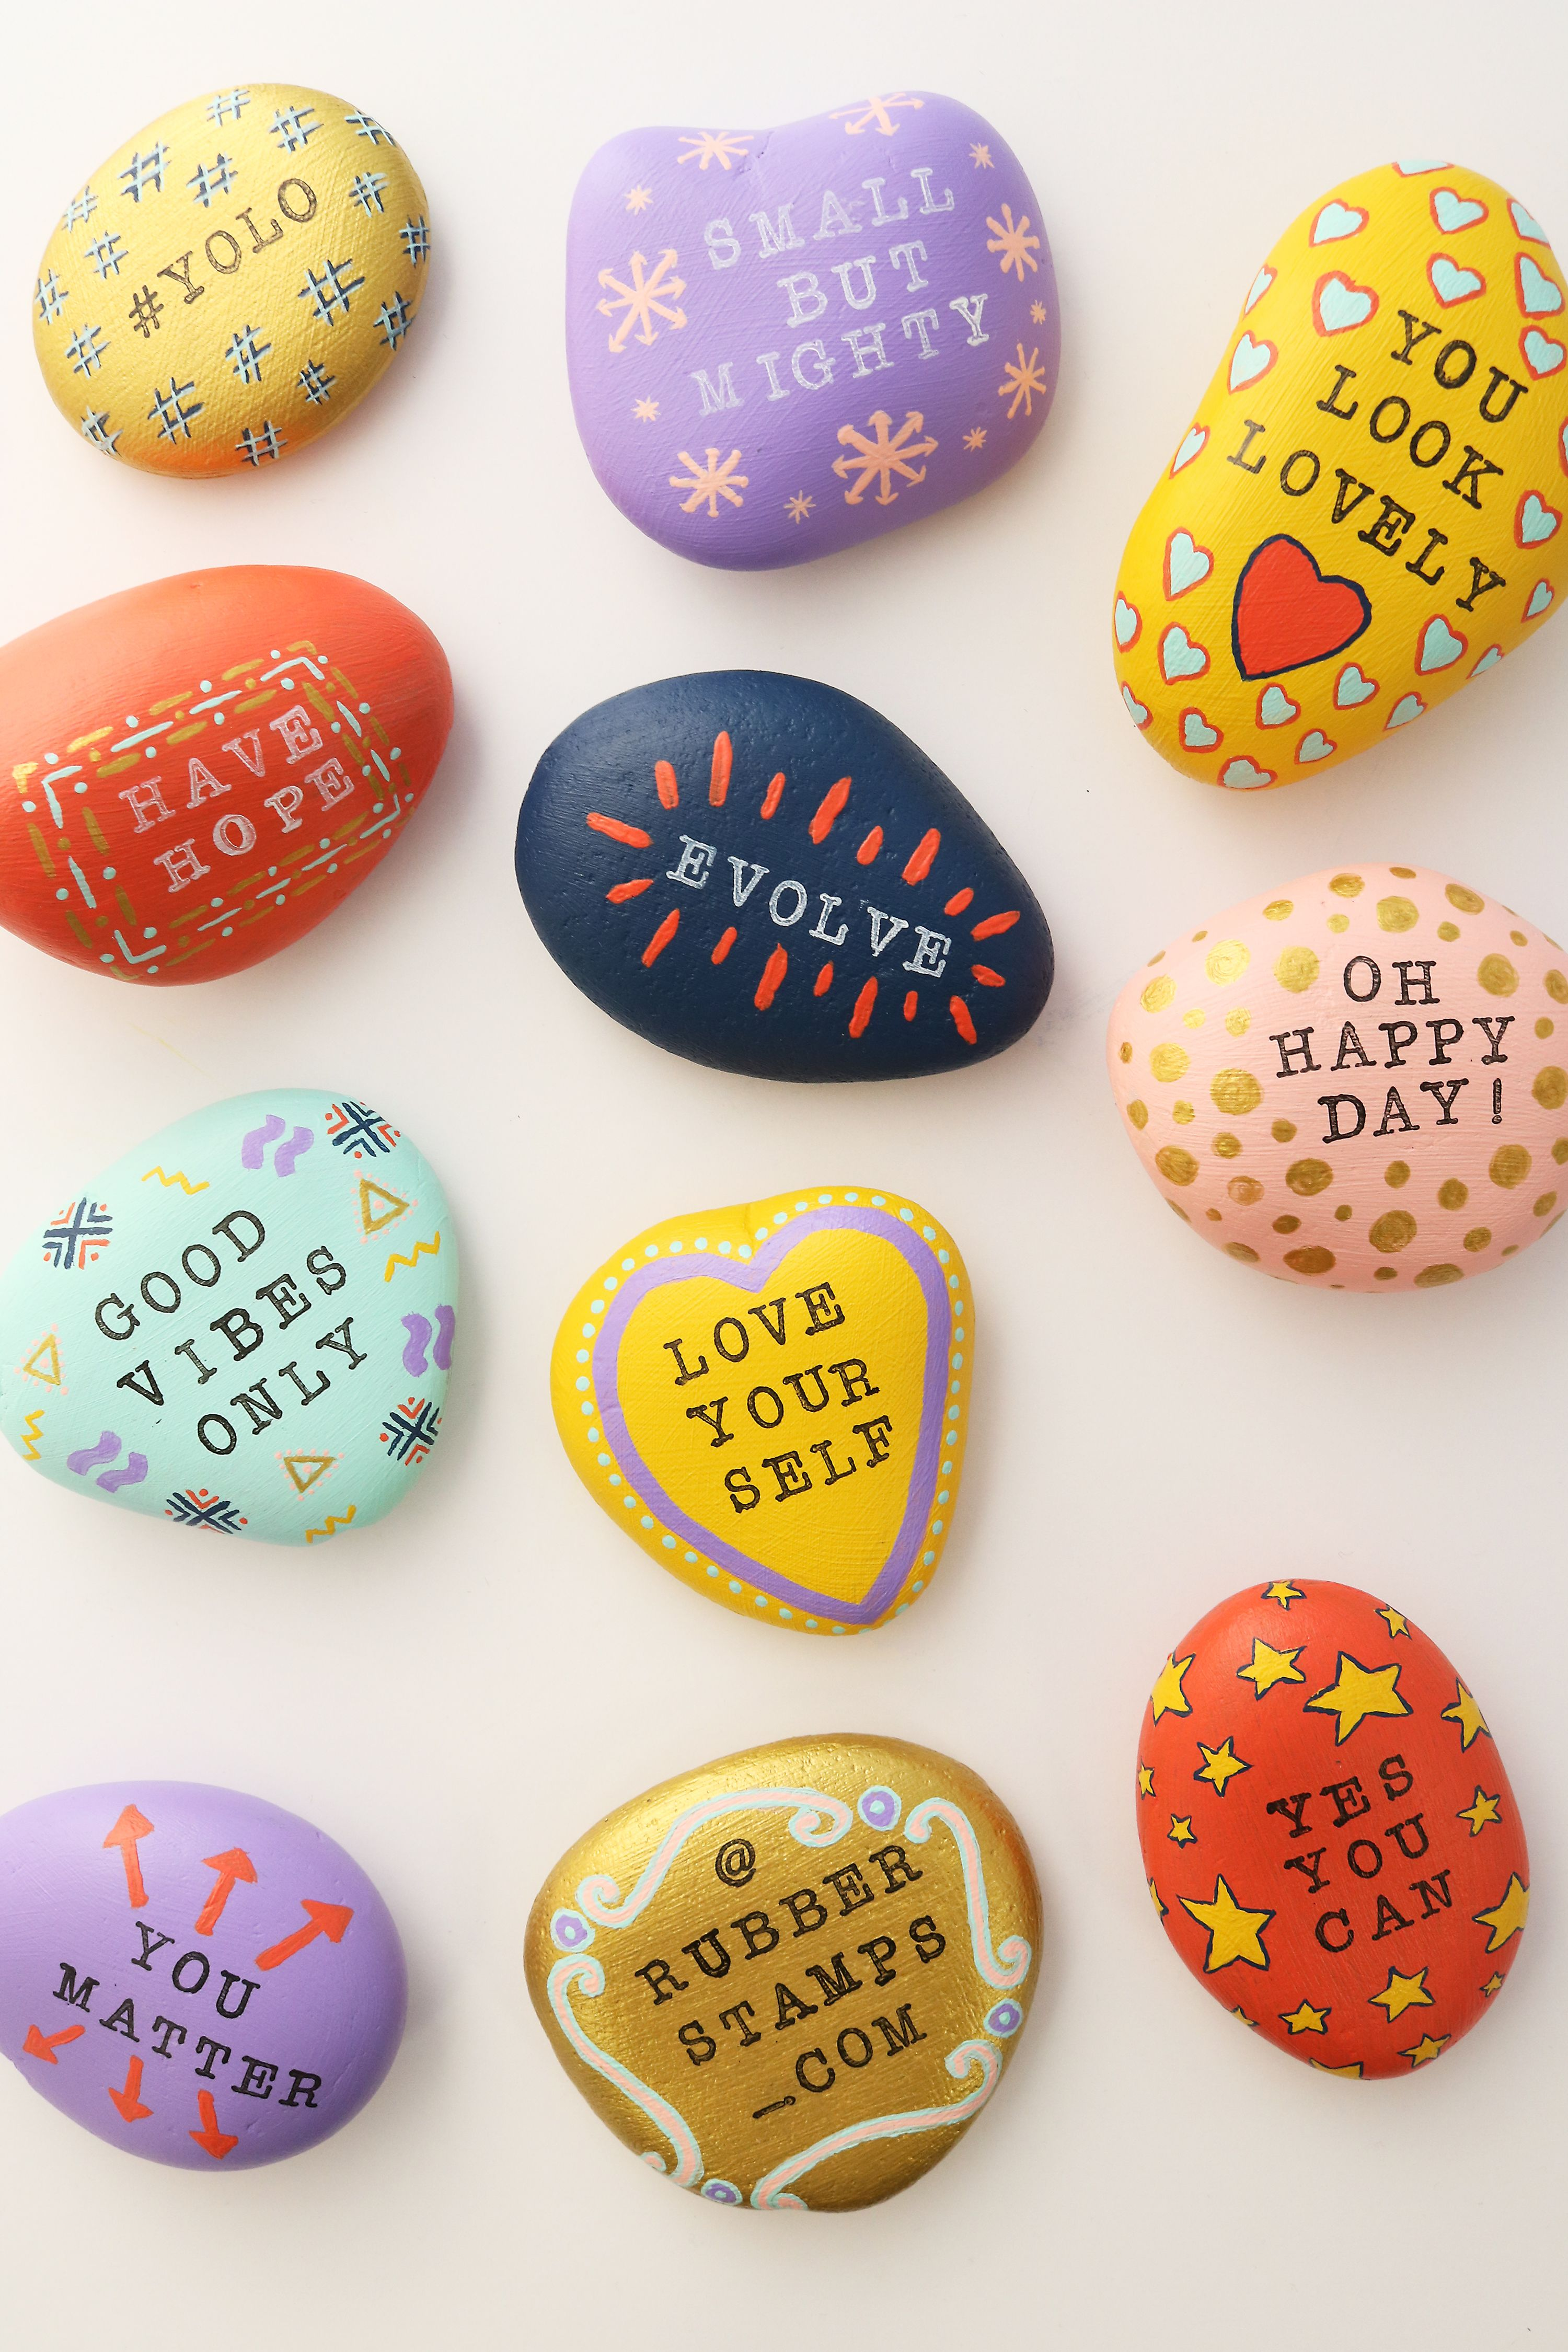 The Kindness Rocks Project – RubberStamps.com Blog